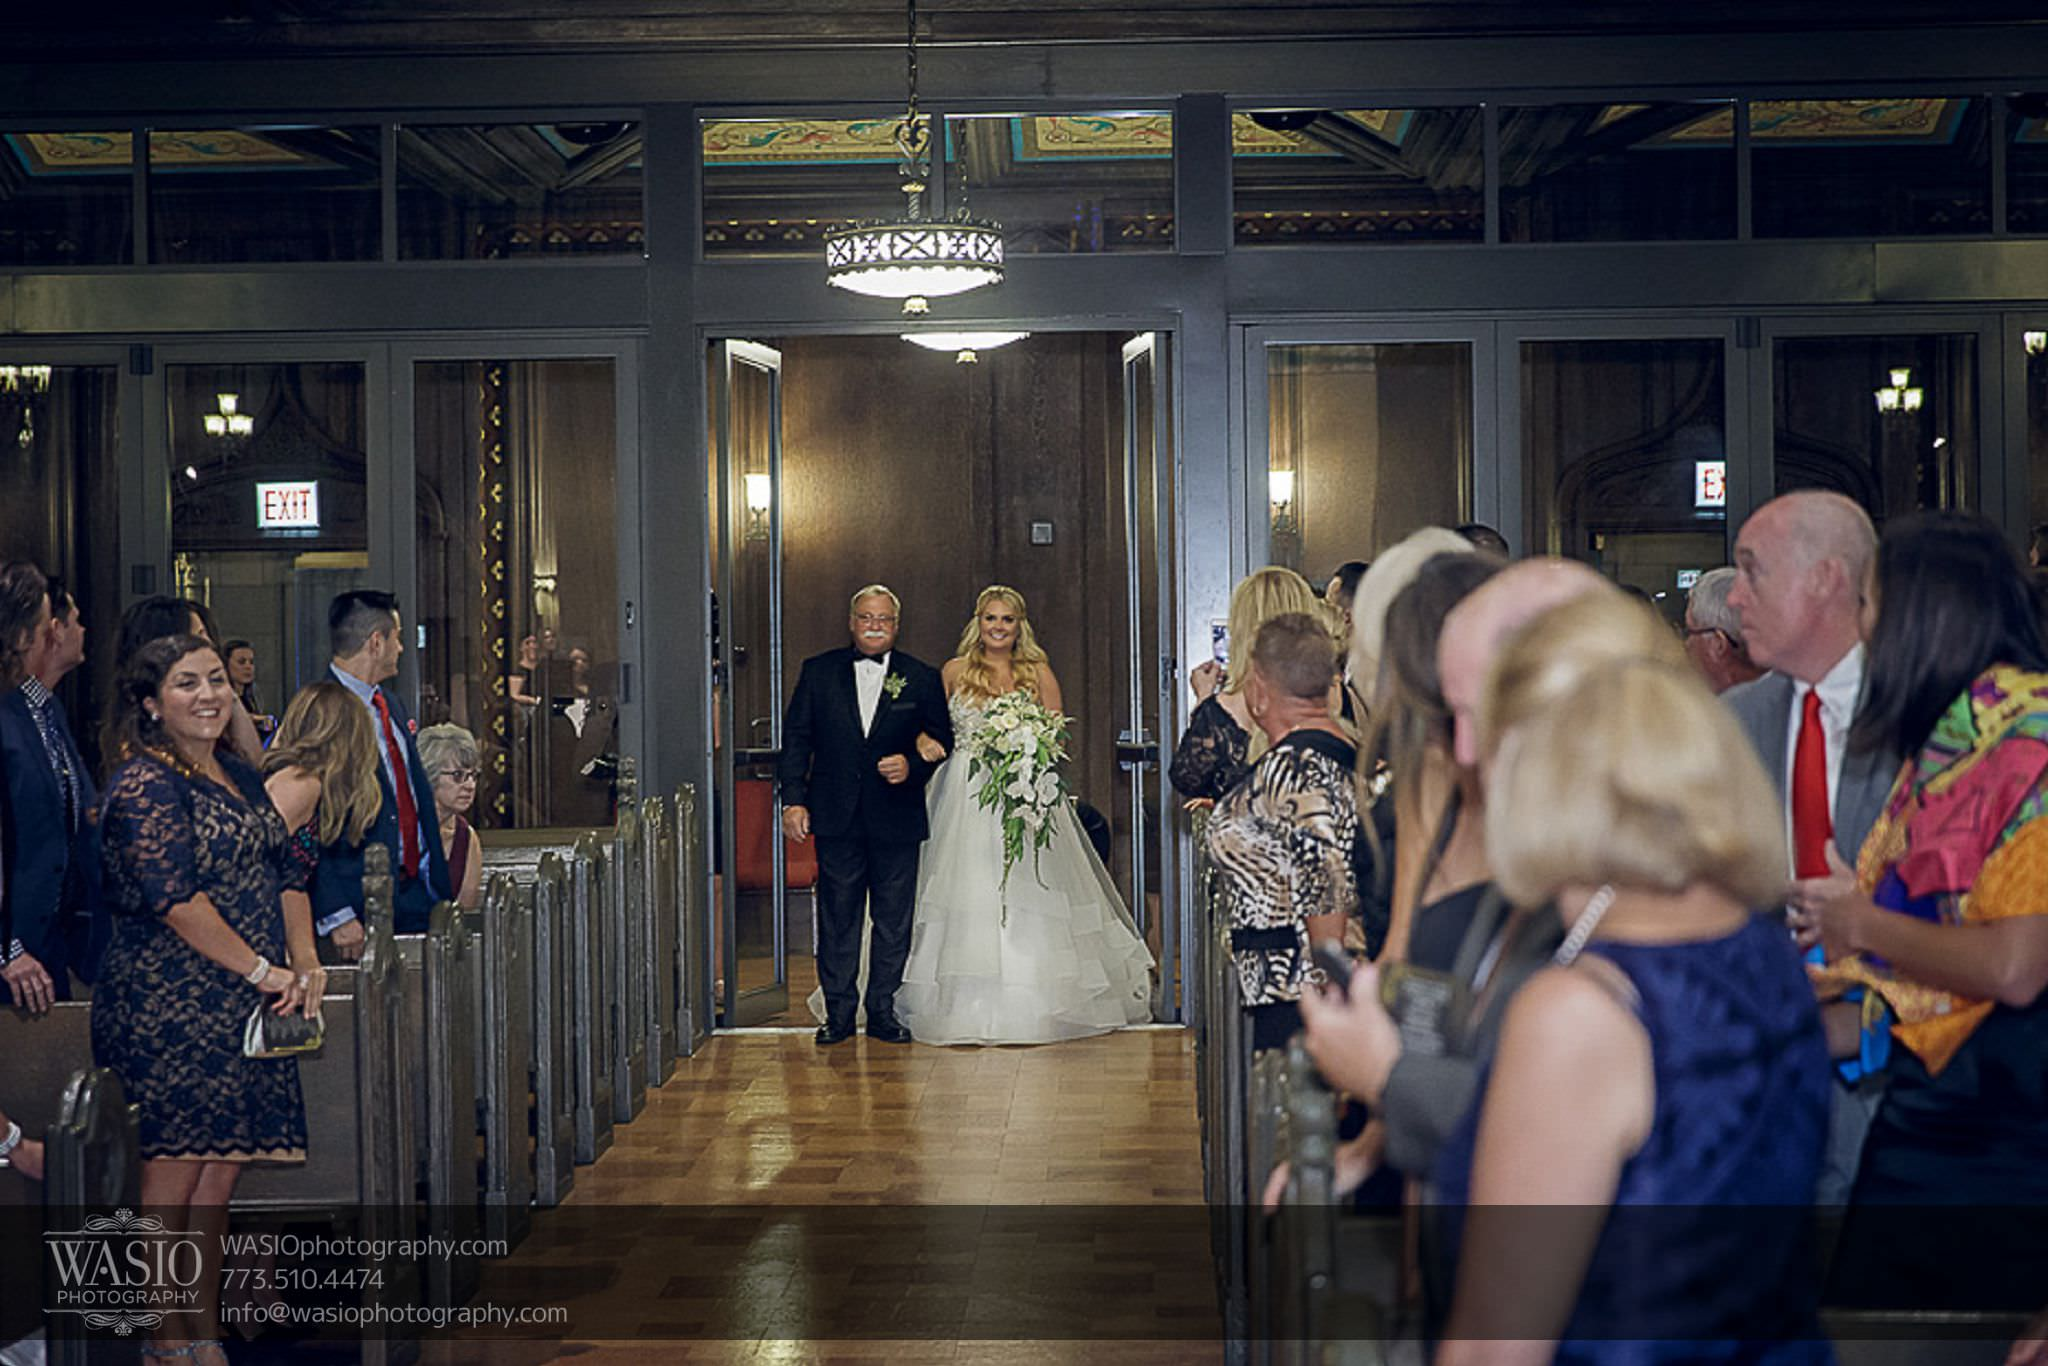 venue-one-chicago-wedding-First-Methodist-Church-bride-father-orchids-ceremony-58 Venue One Chicago Wedding - Katie + Mike